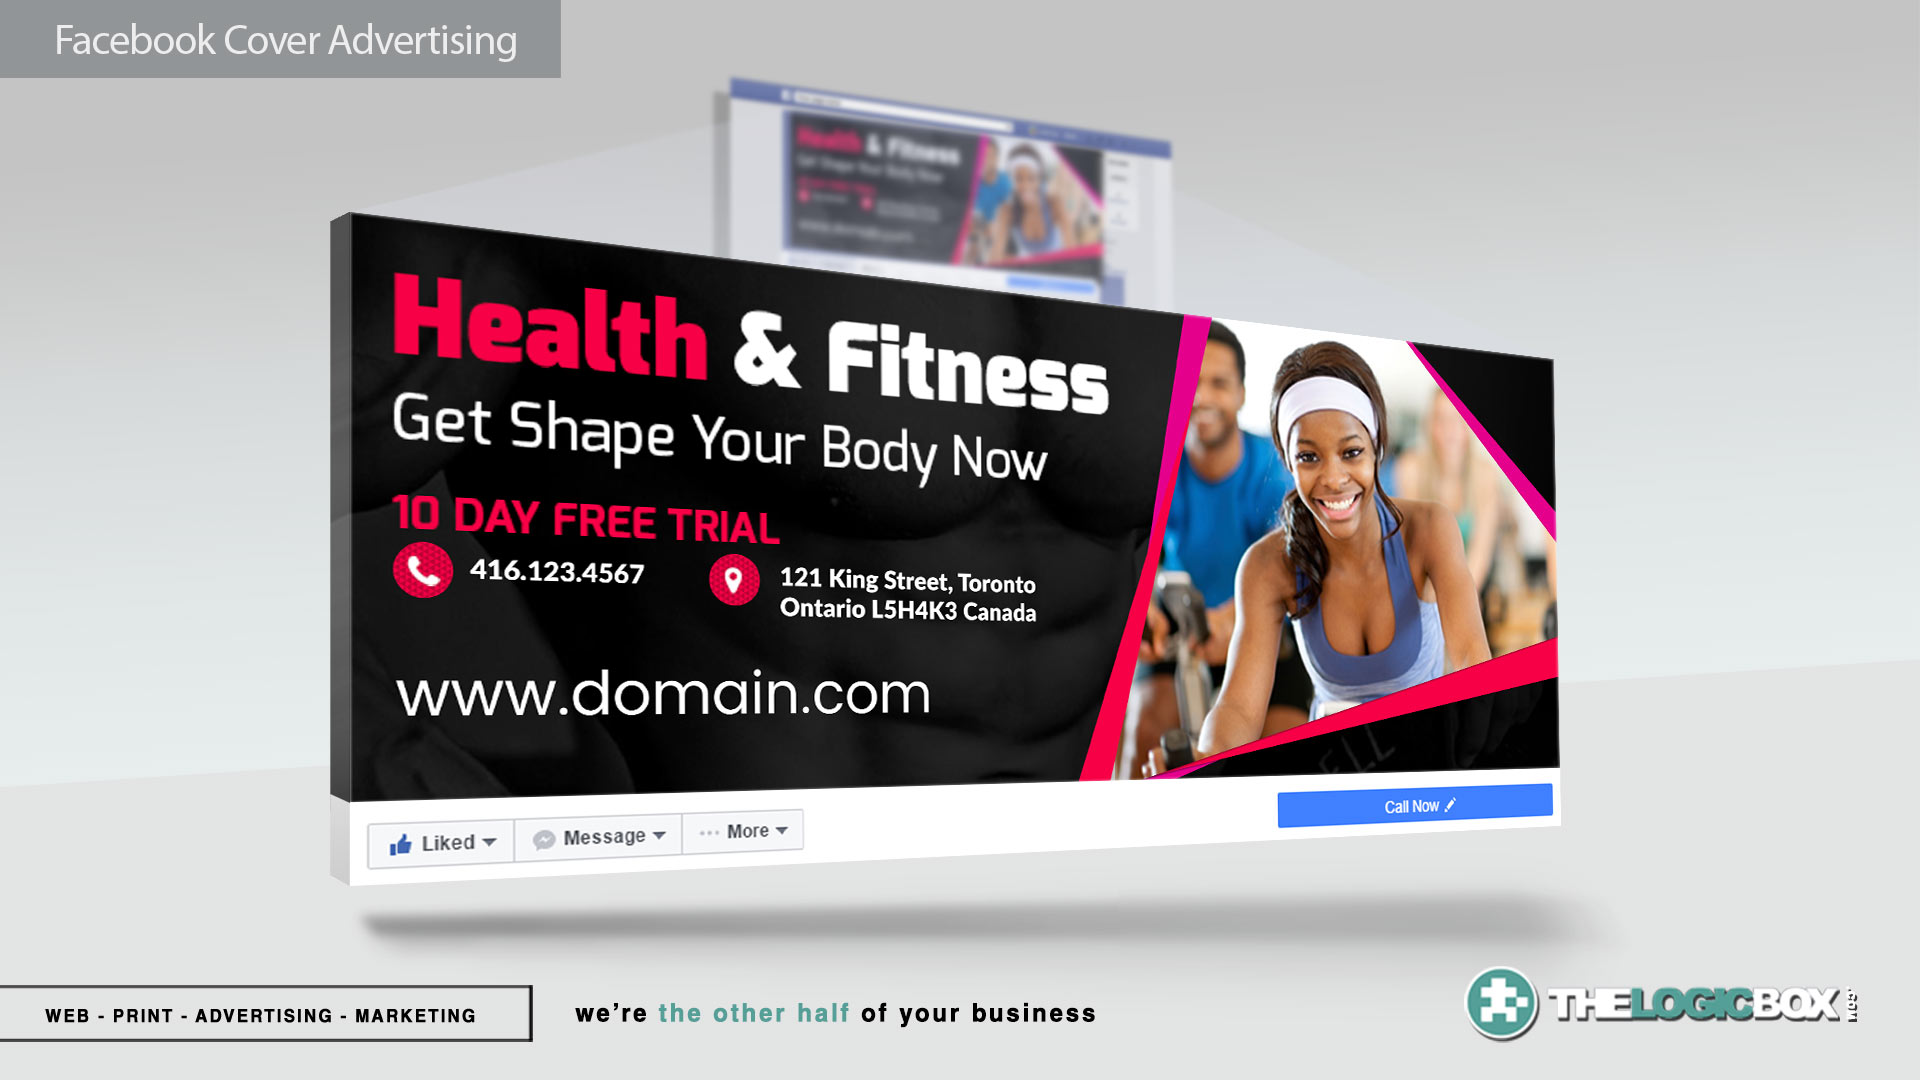 Facebook Cover Banners & Advertisement Mockup PSDs Fitness - Digital Marketing Toronto | The Logic Box